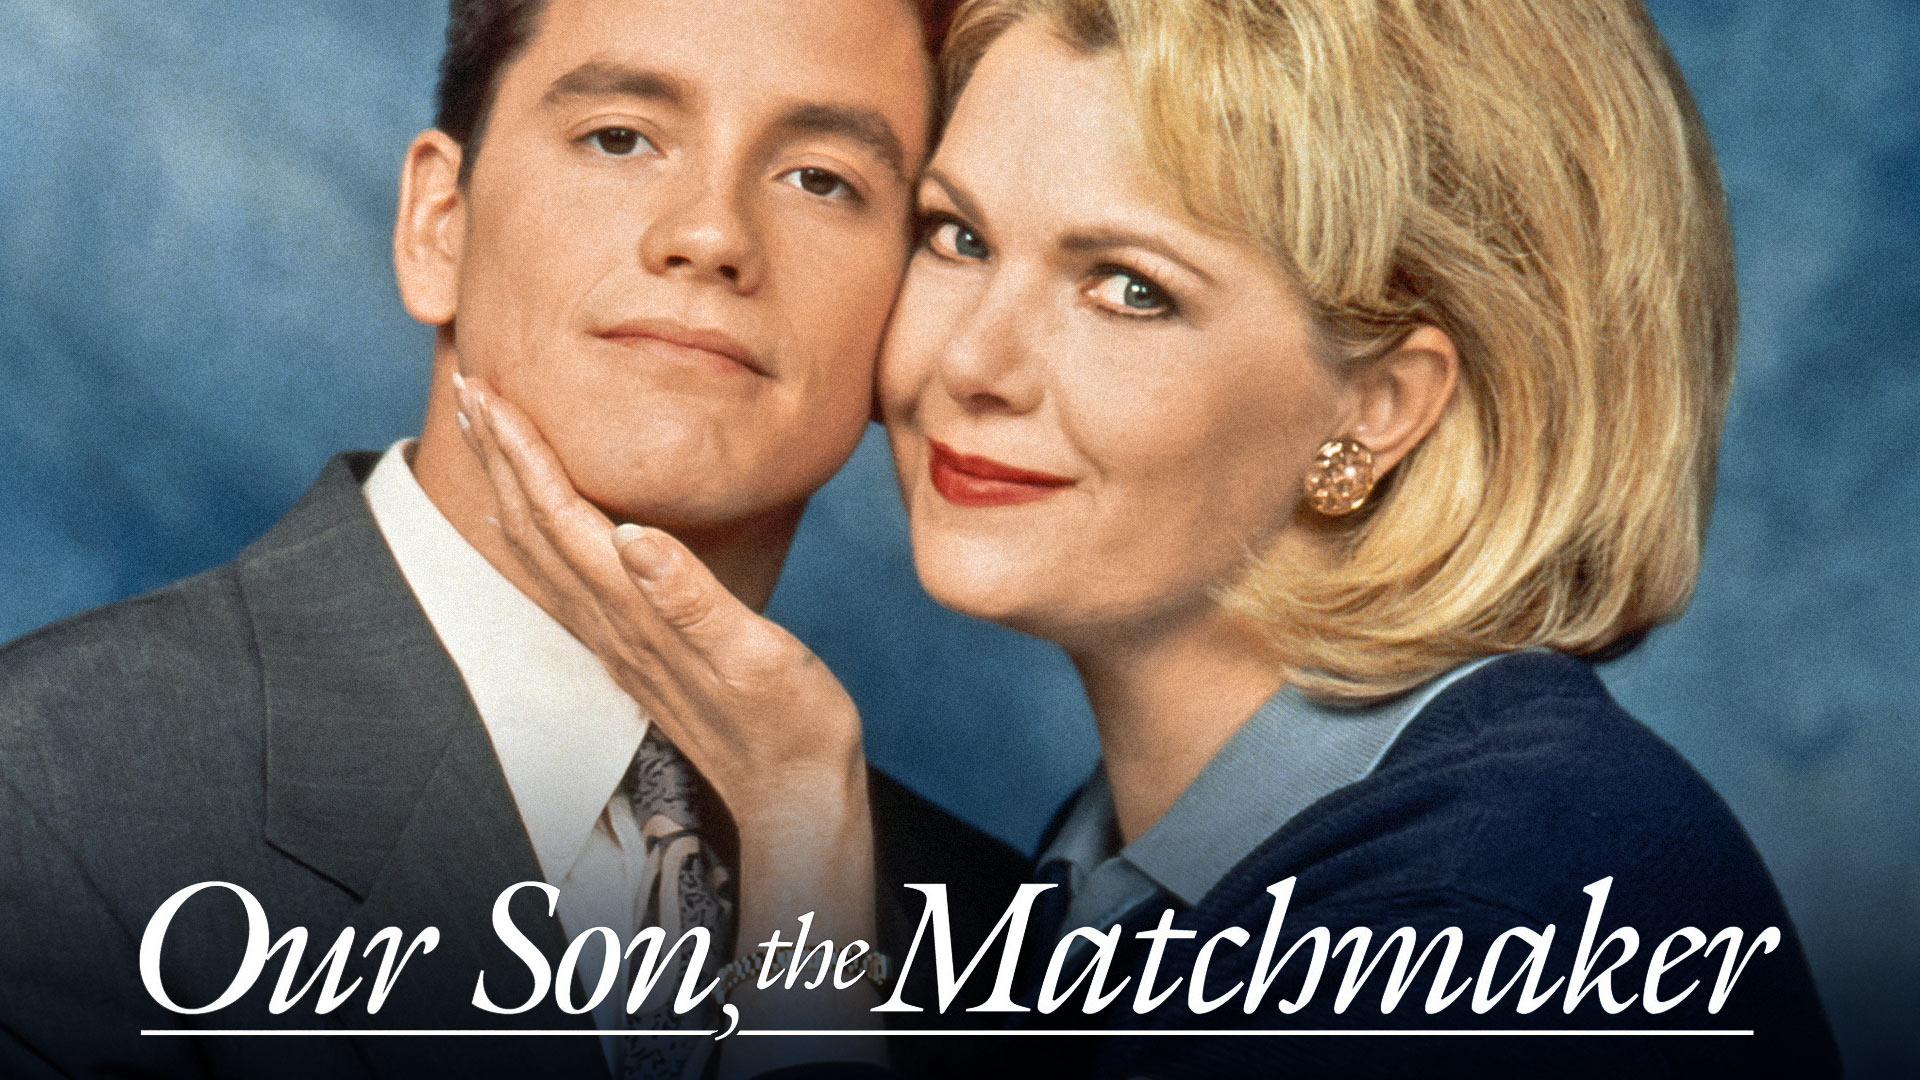 Our Son, The Matchmaker